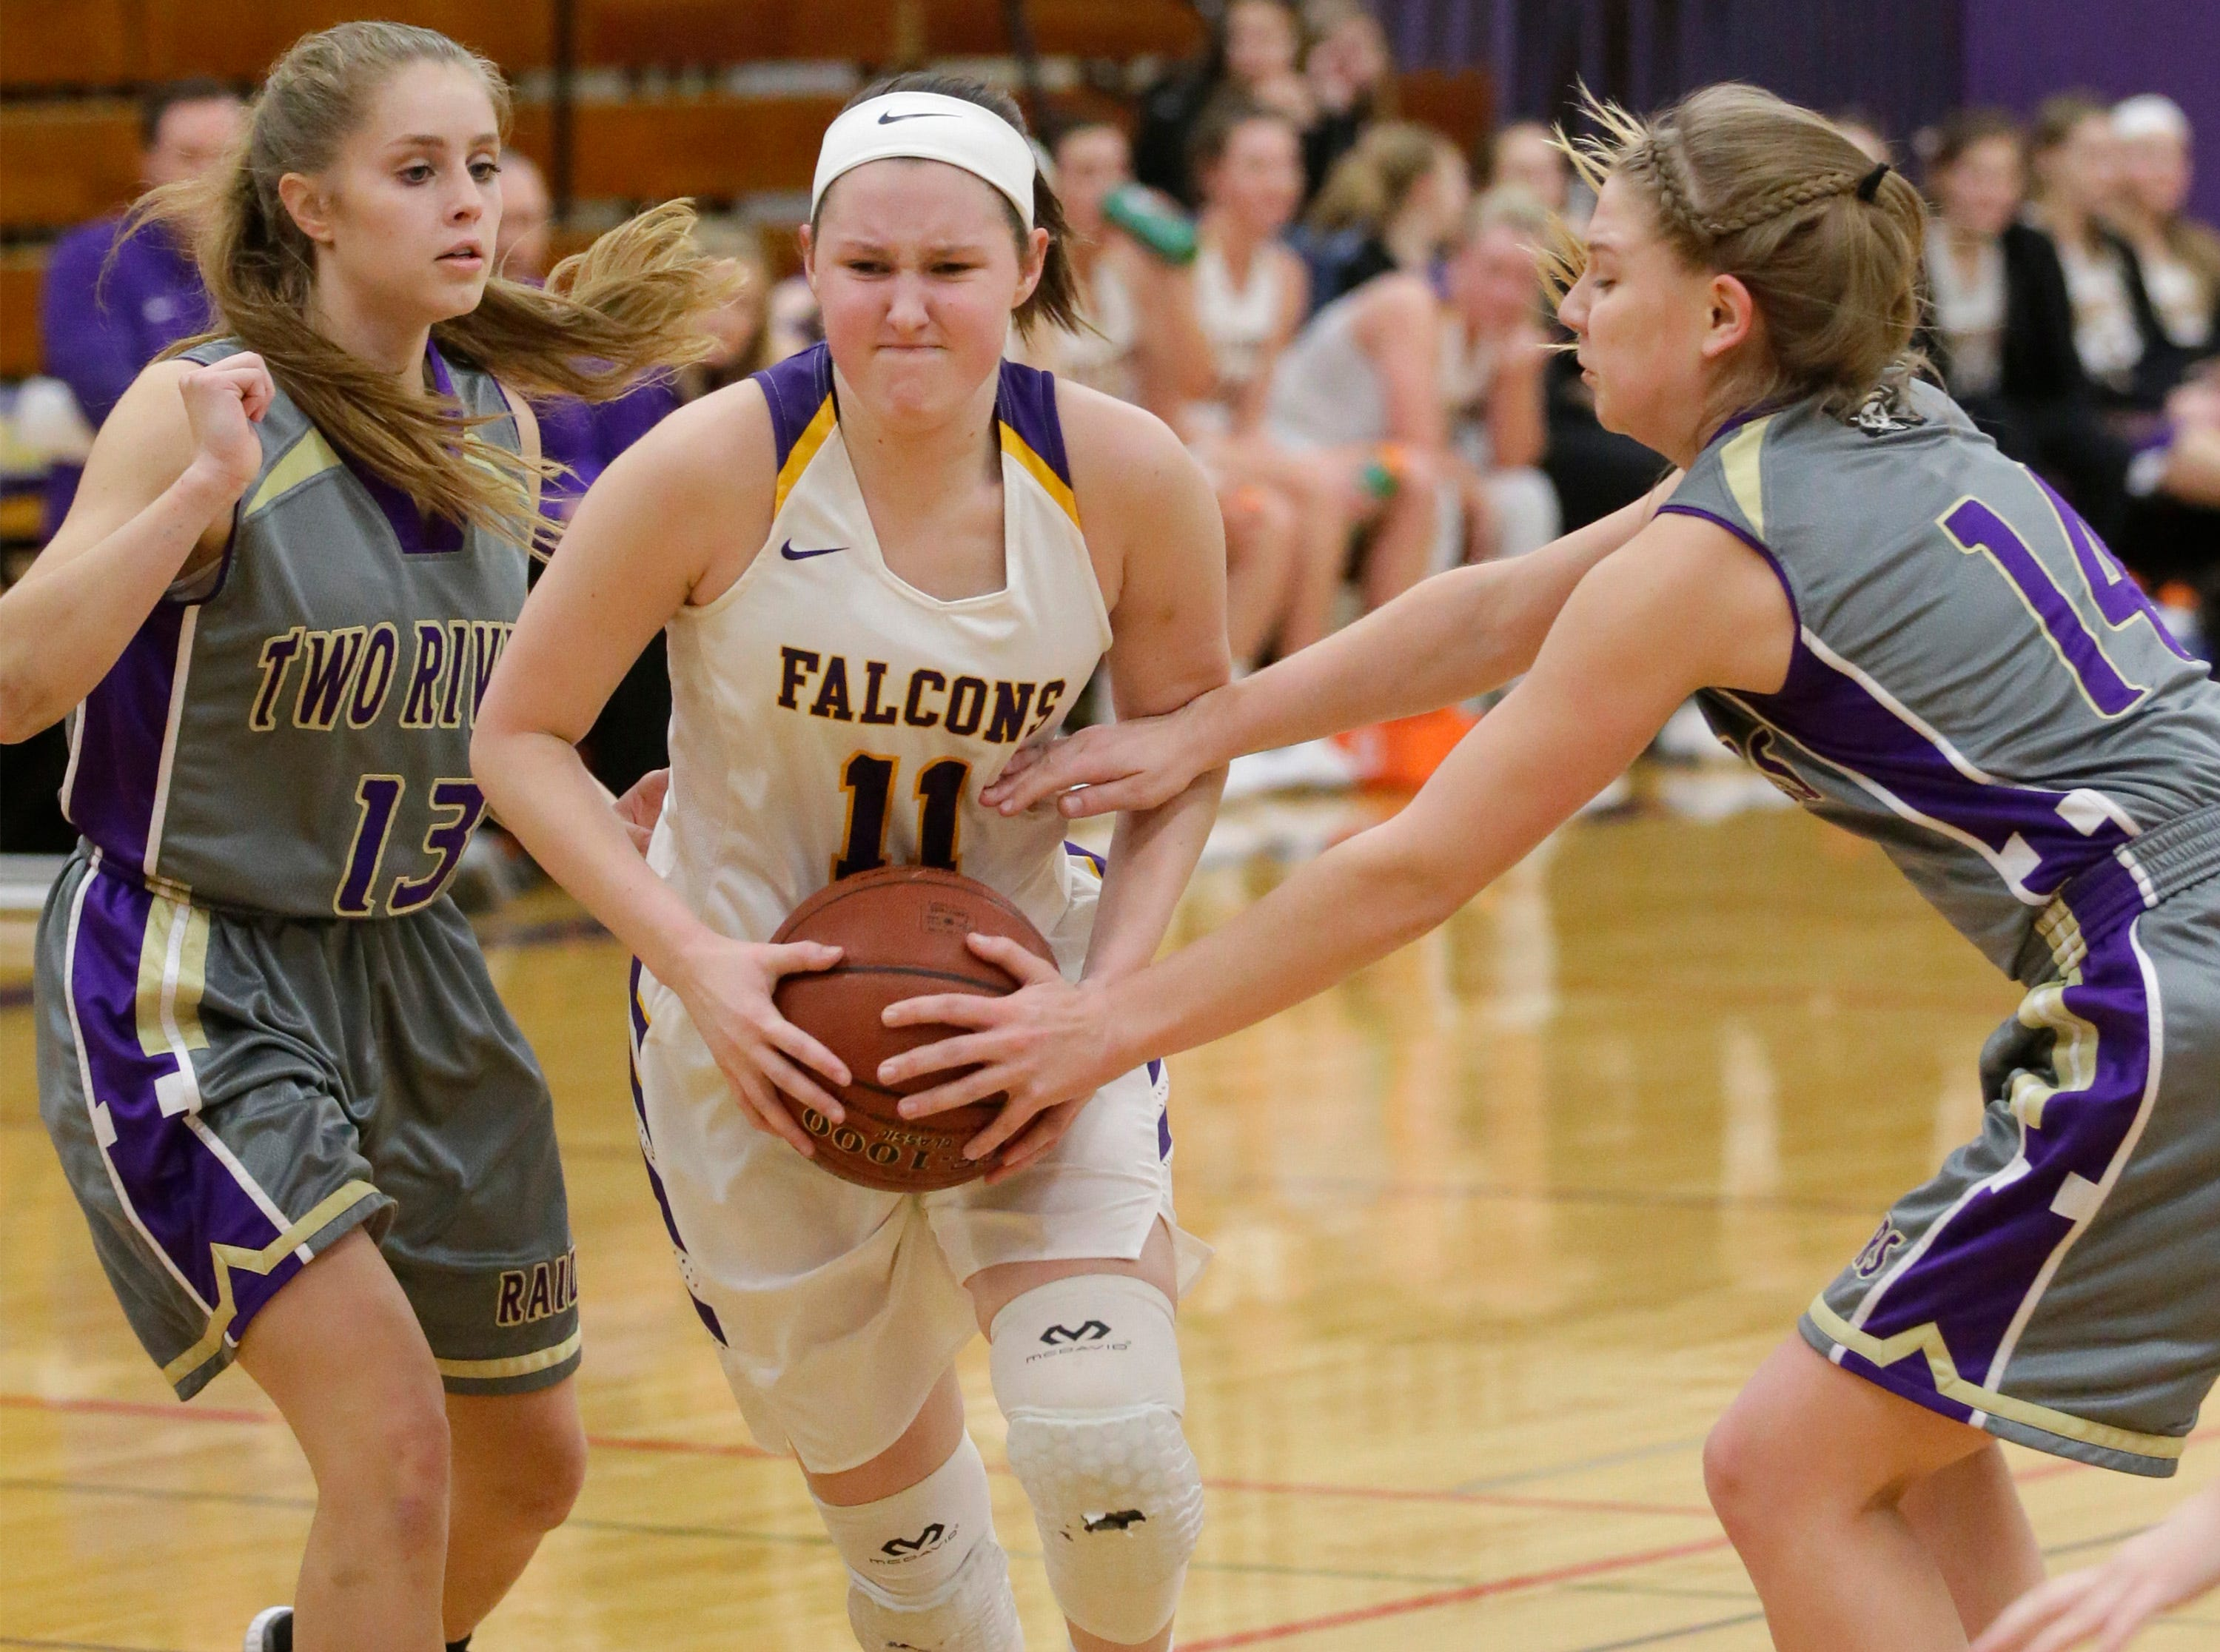 Sheboygan Falls' Claire Smallwood (11) grips the ball by Two Rivers players, Thursday, February 14, 2019, in Sheboygan Falls, Wis.